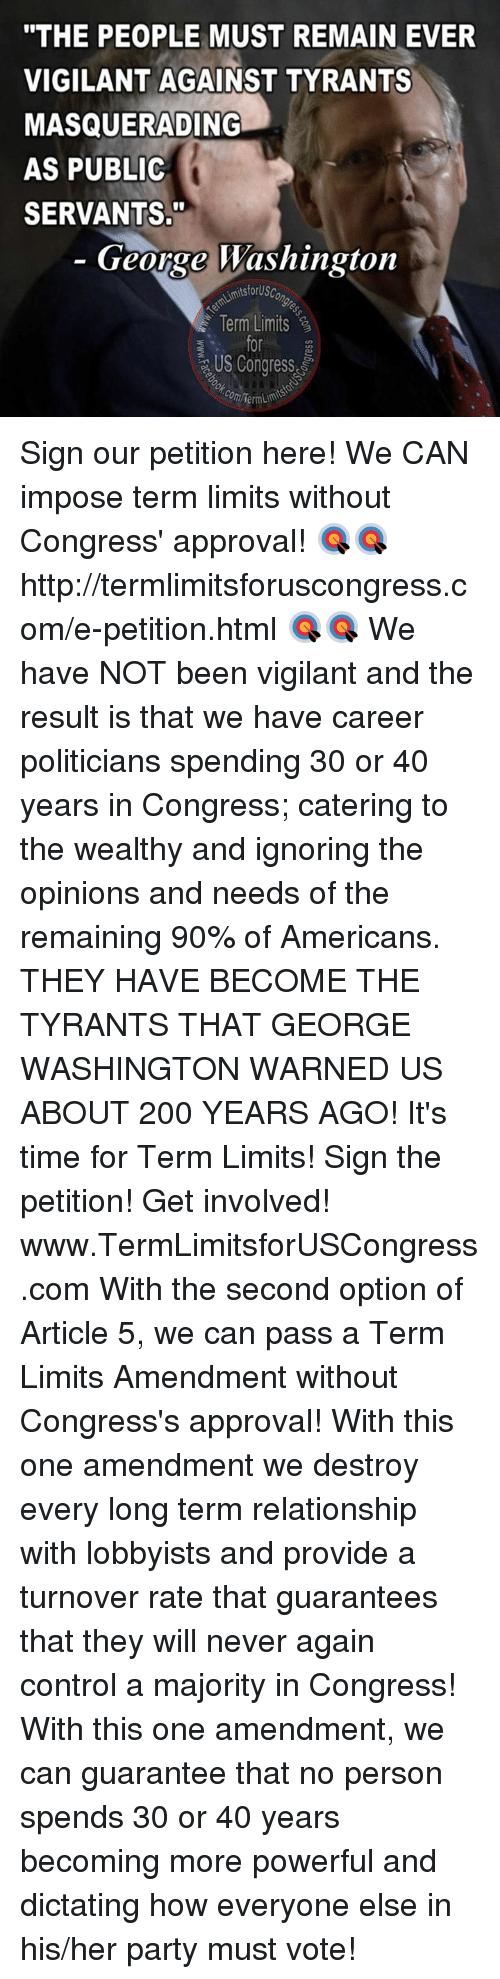 """Dictater: """"THE PEOPLE MUST REMAIN EVER  VIGILANT AGAINST TYRANTS  MASQUERADING  AS PUBLIC  SERVANTS.""""  George Washington  AimitsforUsc  Term Limits  US Congress  com Term Sign our petition here! We CAN impose term limits without Congress' approval! 🎯🎯http://termlimitsforuscongress.com/e-petition.html 🎯🎯  We have NOT been vigilant and the result is that we have career politicians spending 30 or 40 years in Congress; catering to the wealthy and ignoring the opinions and needs of the remaining 90% of Americans.  THEY HAVE BECOME THE TYRANTS THAT GEORGE WASHINGTON WARNED US ABOUT 200 YEARS AGO!  It's time for Term Limits! Sign the petition! Get involved! www.TermLimitsforUSCongress.com  With the second option of Article 5, we can pass a Term Limits Amendment without Congress's approval! With this one amendment we destroy every long term relationship with lobbyists and provide a turnover rate that guarantees that they will never again control a majority in Congress! With this one amendment, we can guarantee that no person spends 30 or 40 years becoming more powerful and dictating how everyone else in his/her party must vote!"""